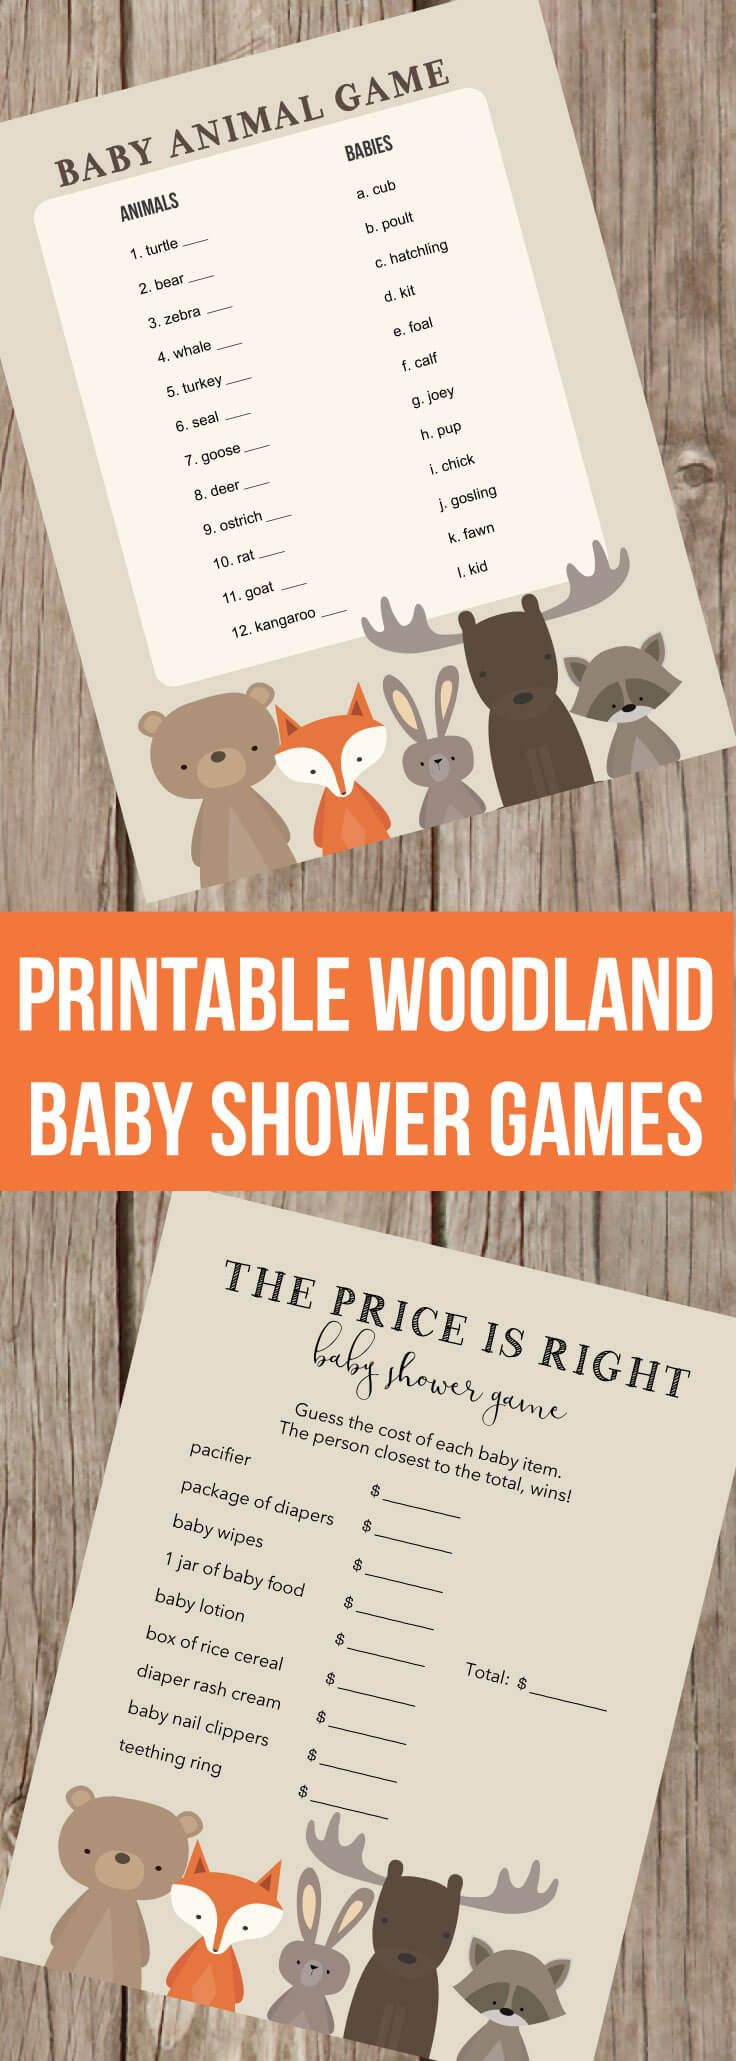 baby shower invitation wording for bringing diapers%0A Printable Woodland Baby Shower Games  The Price Is Right  Left Right Game   Baby